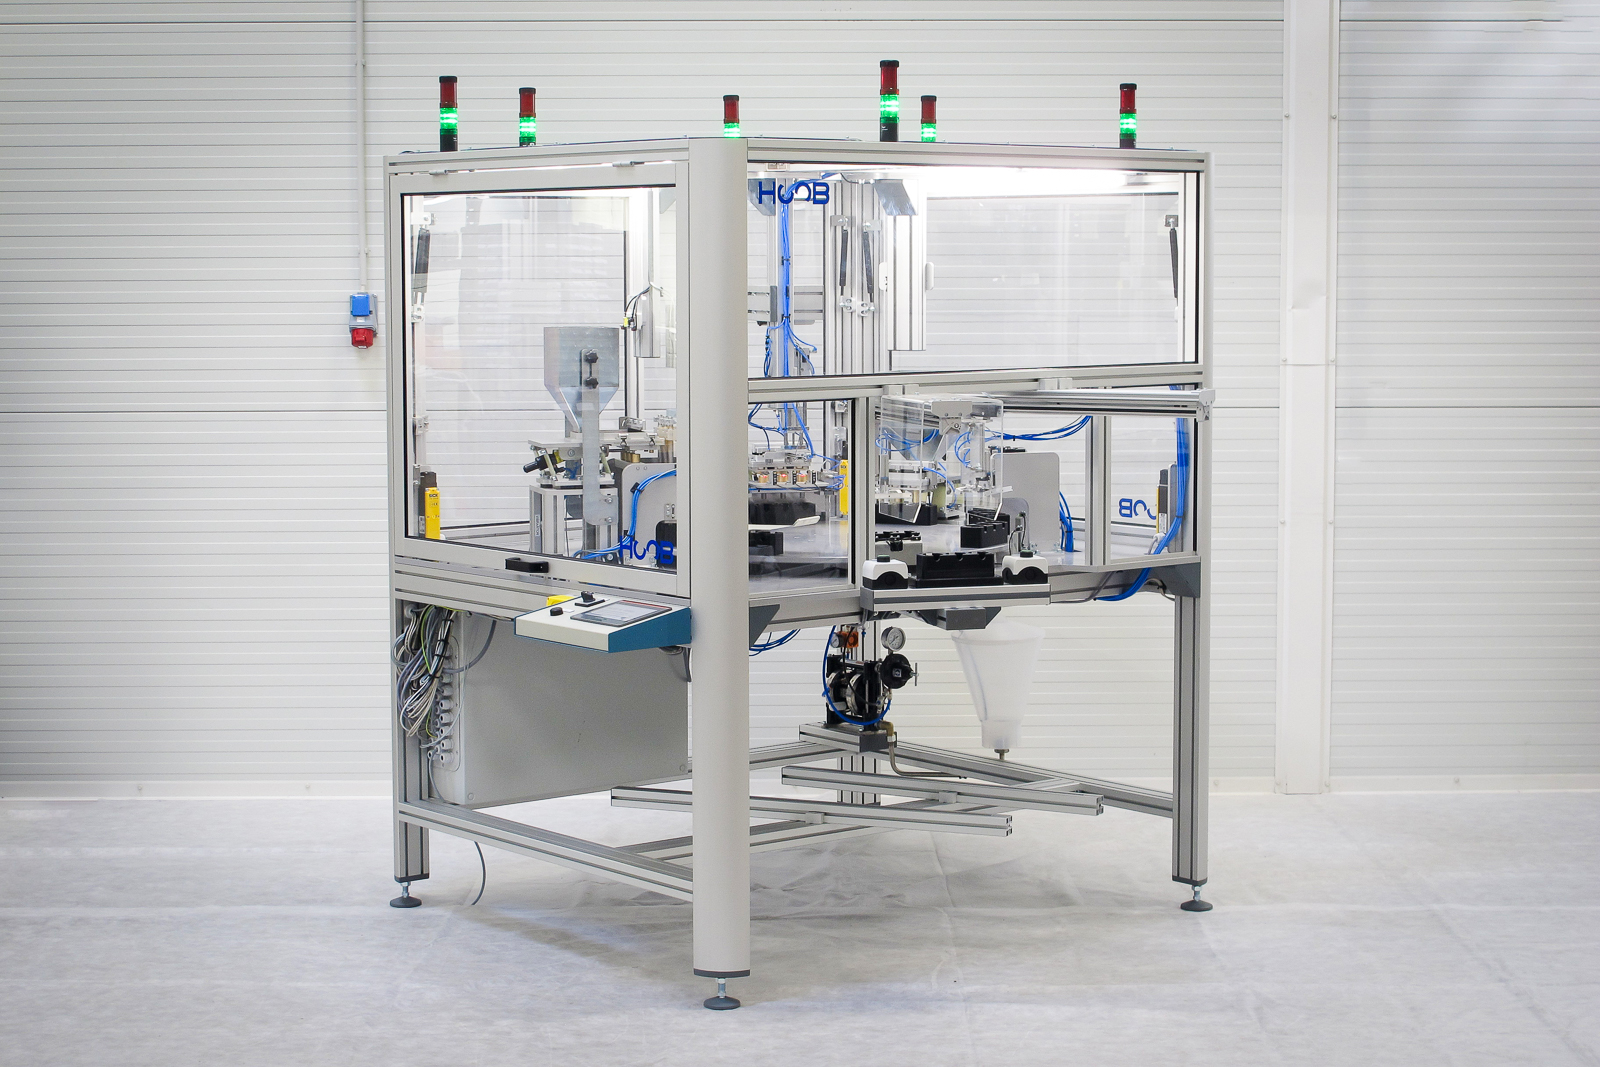 Turntable production cell for the food industry - HOOB